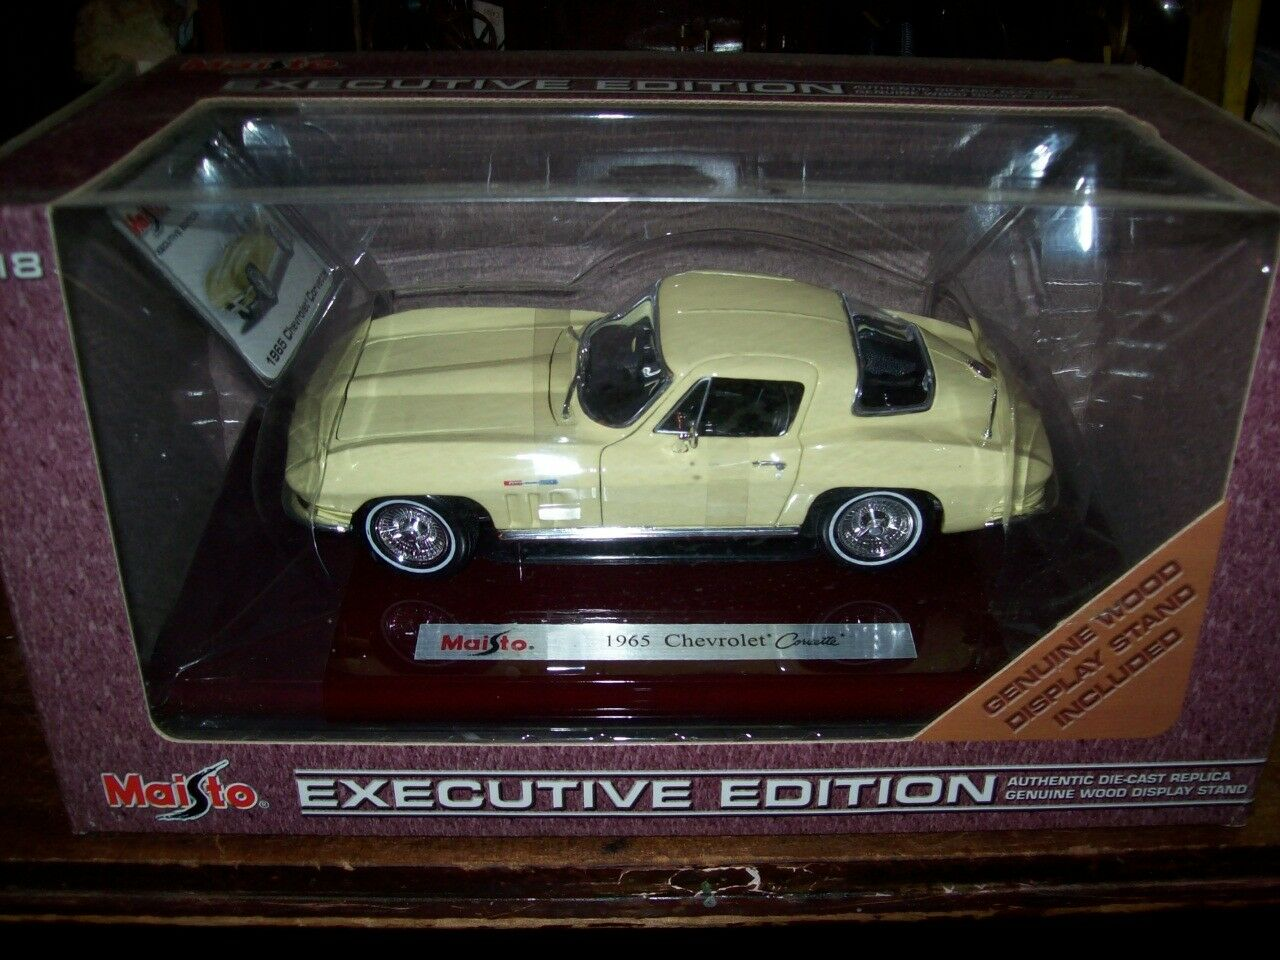 Maisto Executive utgåva 1965 Chevrolet Corvette 1-18 Scale Oöppnad ruta